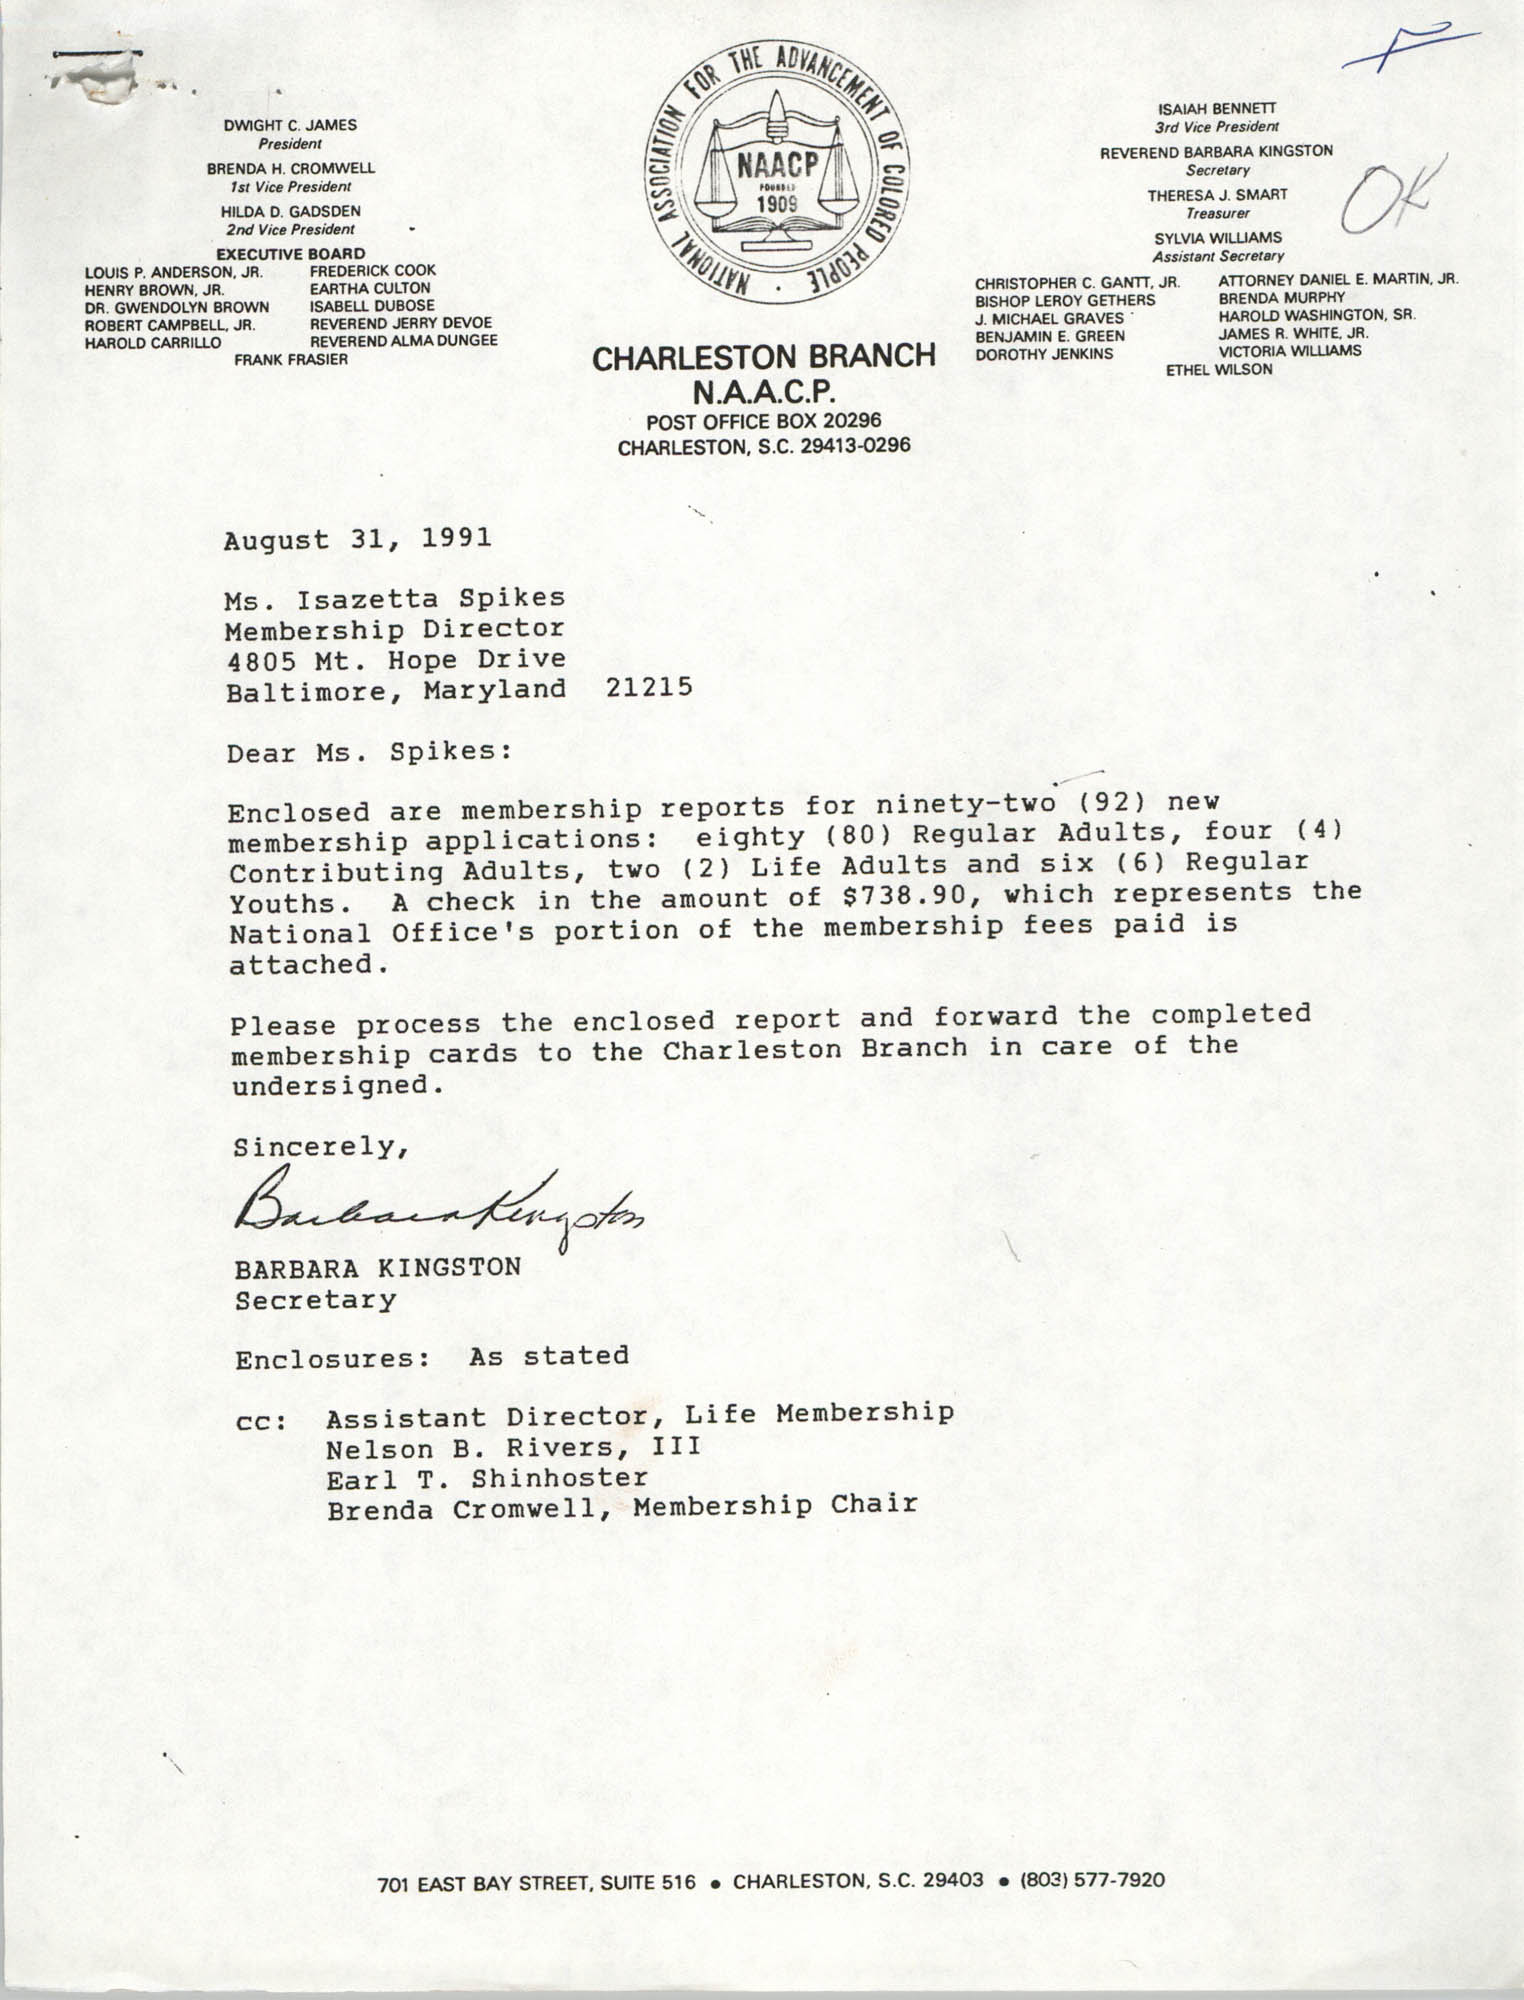 Letter from Barbara Kingston to Isazetta Spikes, August 31, 1991